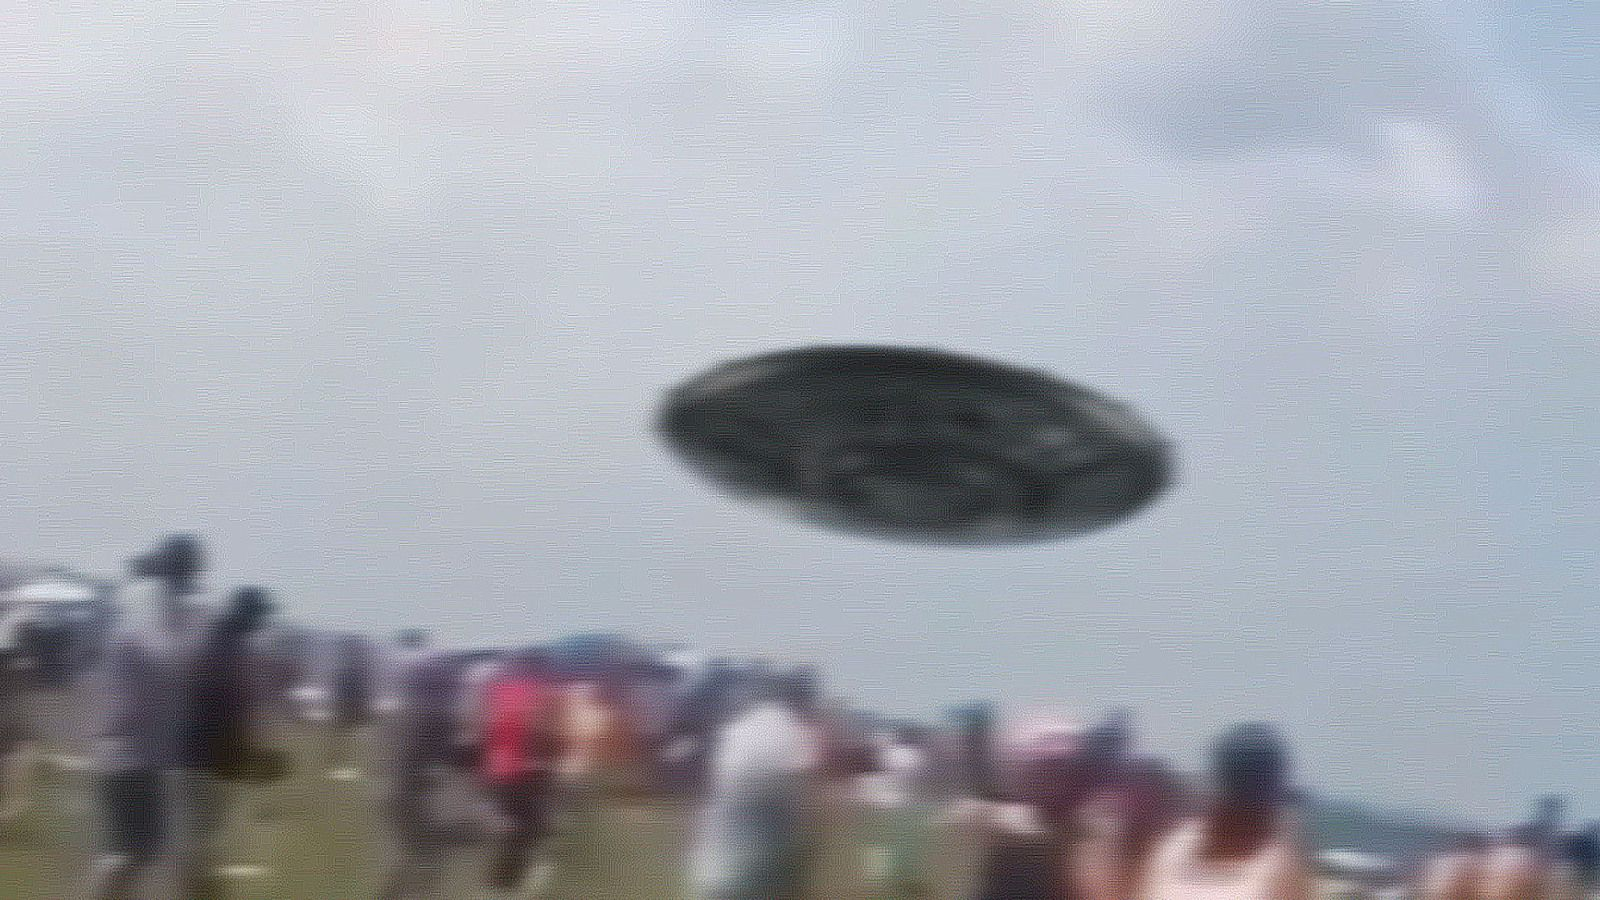 👽 Disc UFO Low Pass over Miami Beach